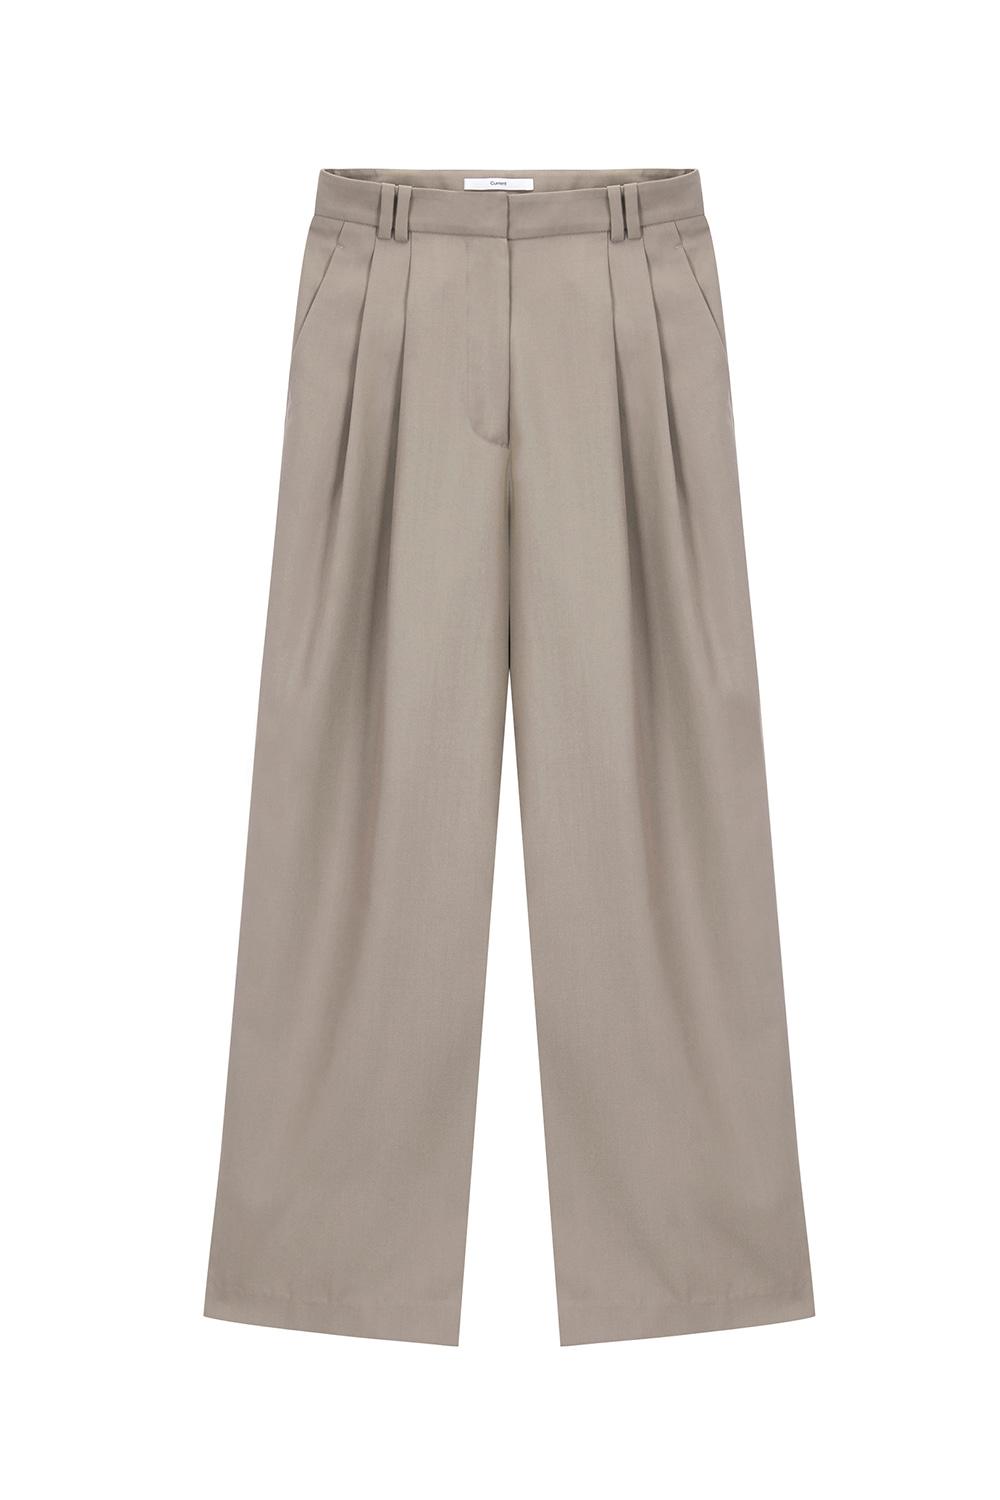 Two Tuck Wide Leg Pants Women [Dark Beige]